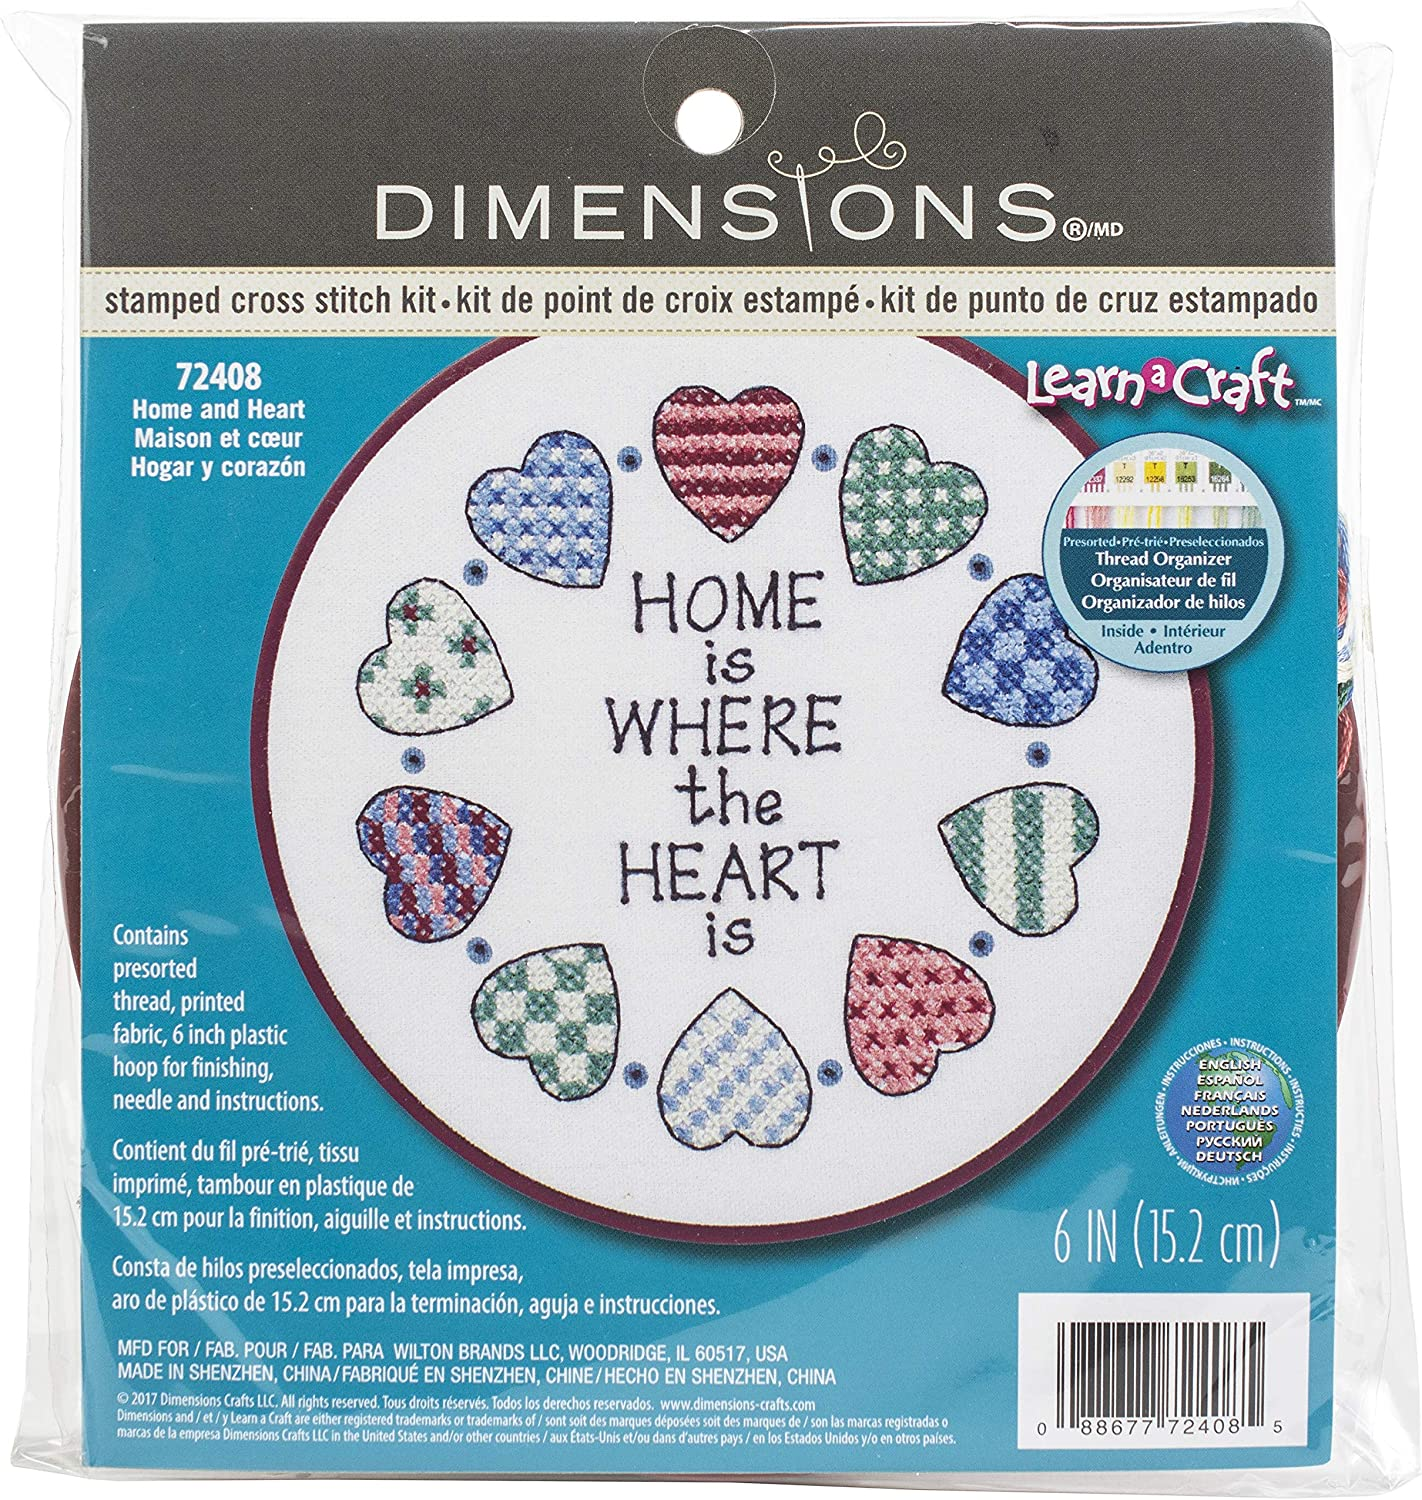 DIMENSIONS Learn-A-Craft Home and Heart Stamped Cross Stitch Kit-6 Inch x6 Inch